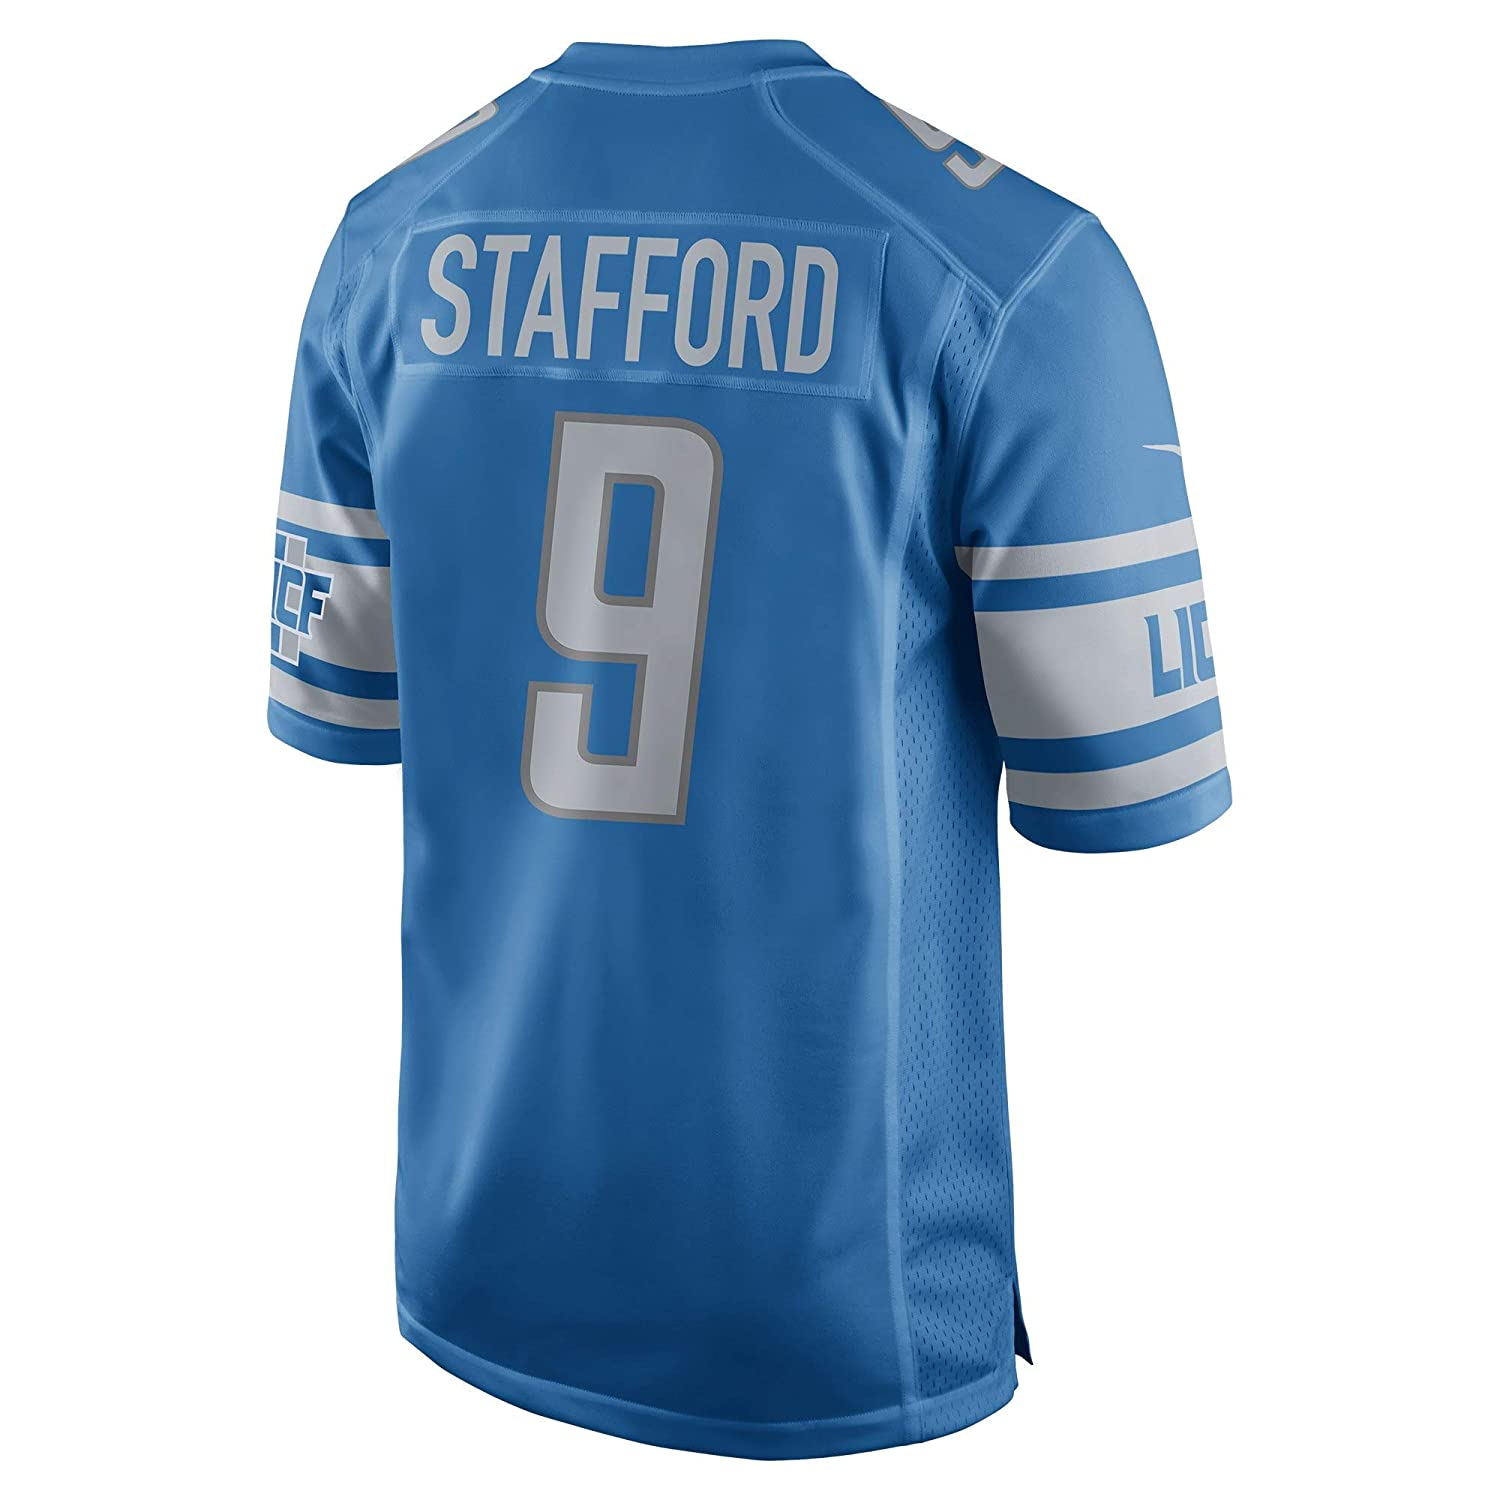 finest selection 449d2 307d5 Nike NFL Youth Detroit Lions Matthew Stafford #9 Jersey, Blue